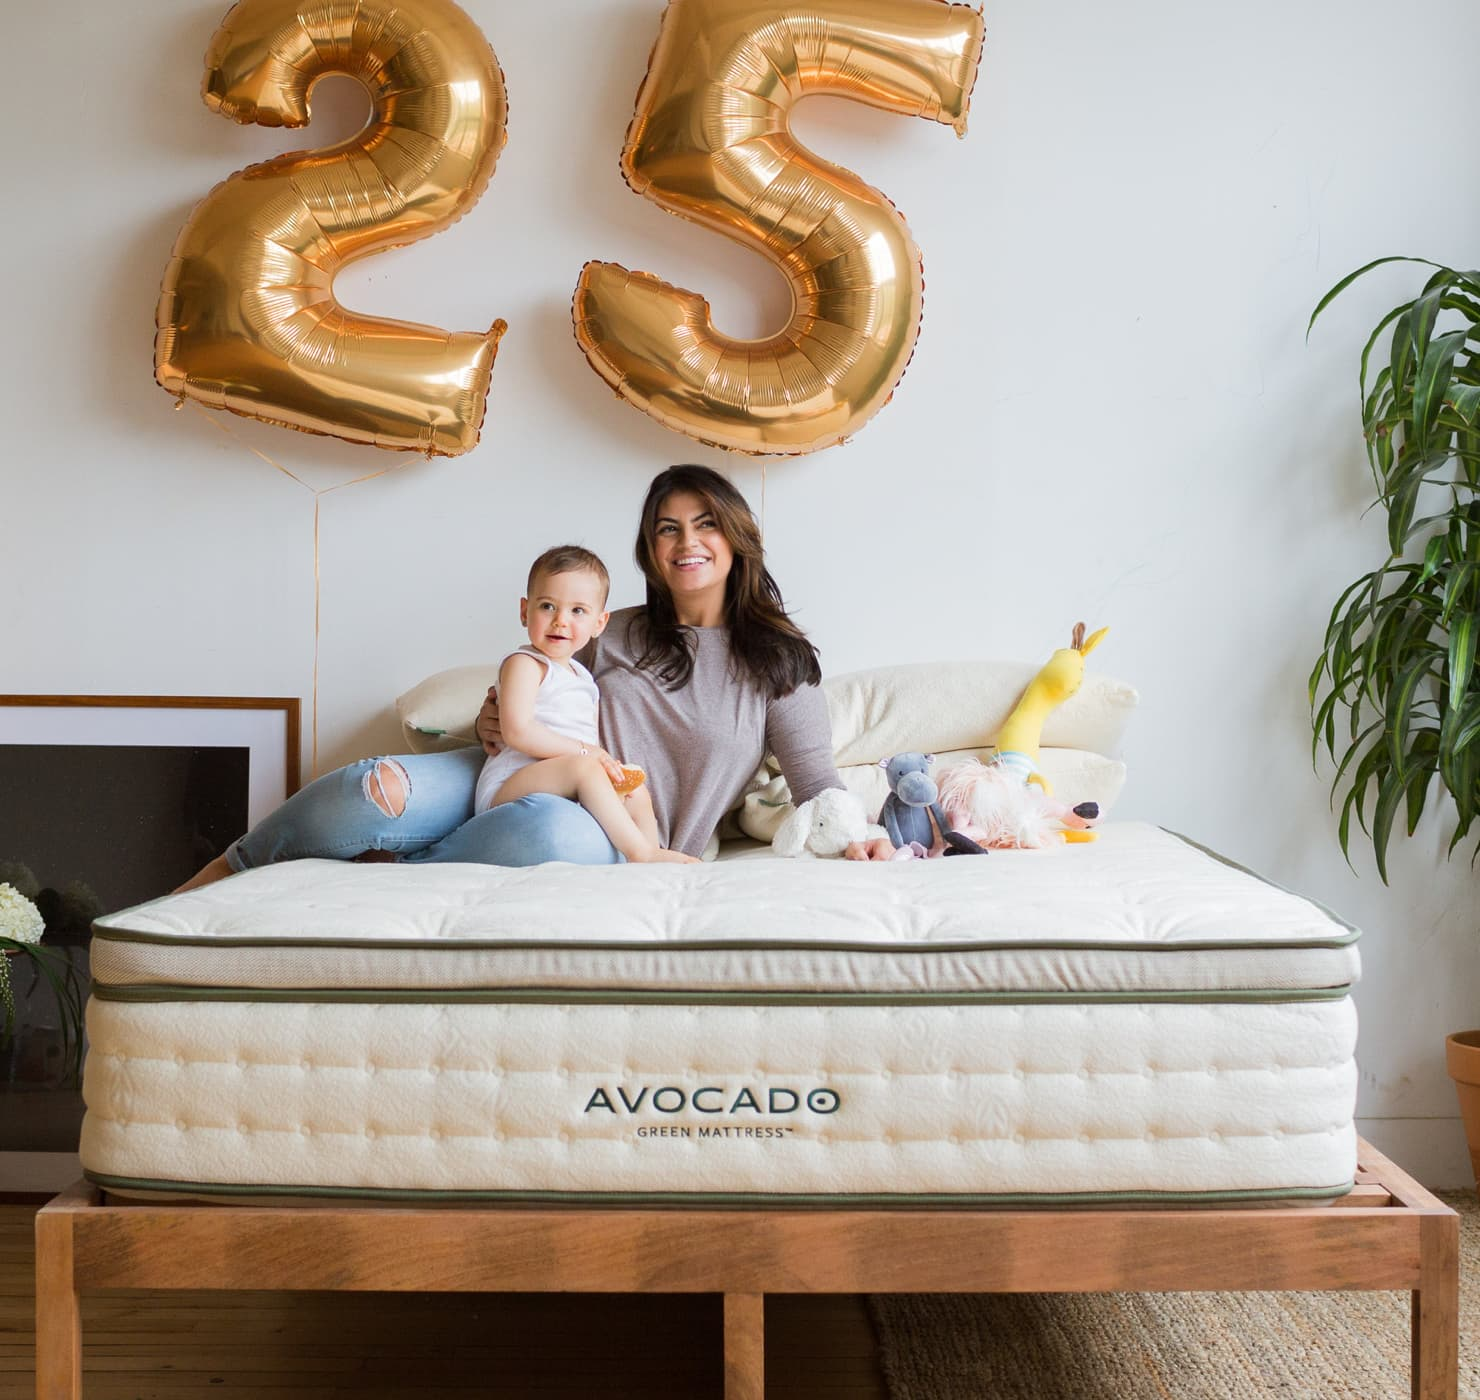 avocado vs awara mattress review